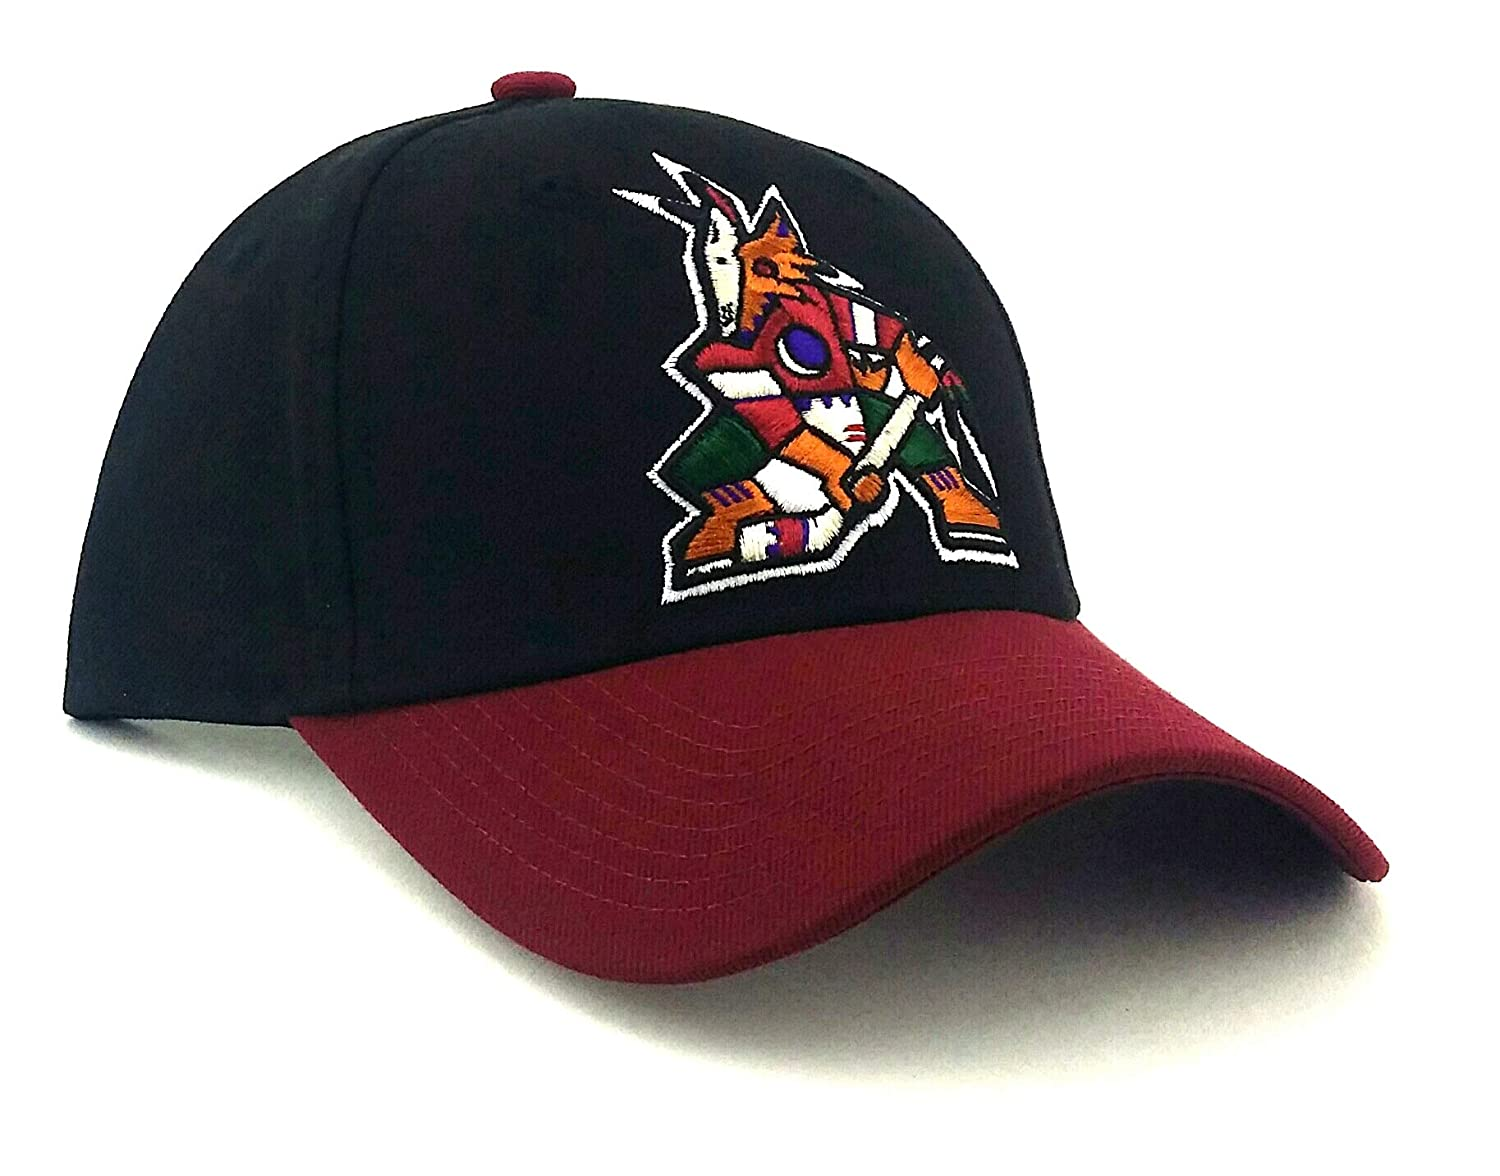 e8b8ca5b405 Amazon.com   Reebok Arizona Coyotes New Phoenix Vintage Original Coyote  Logo Black Red Era Hat Cap   Sports   Outdoors